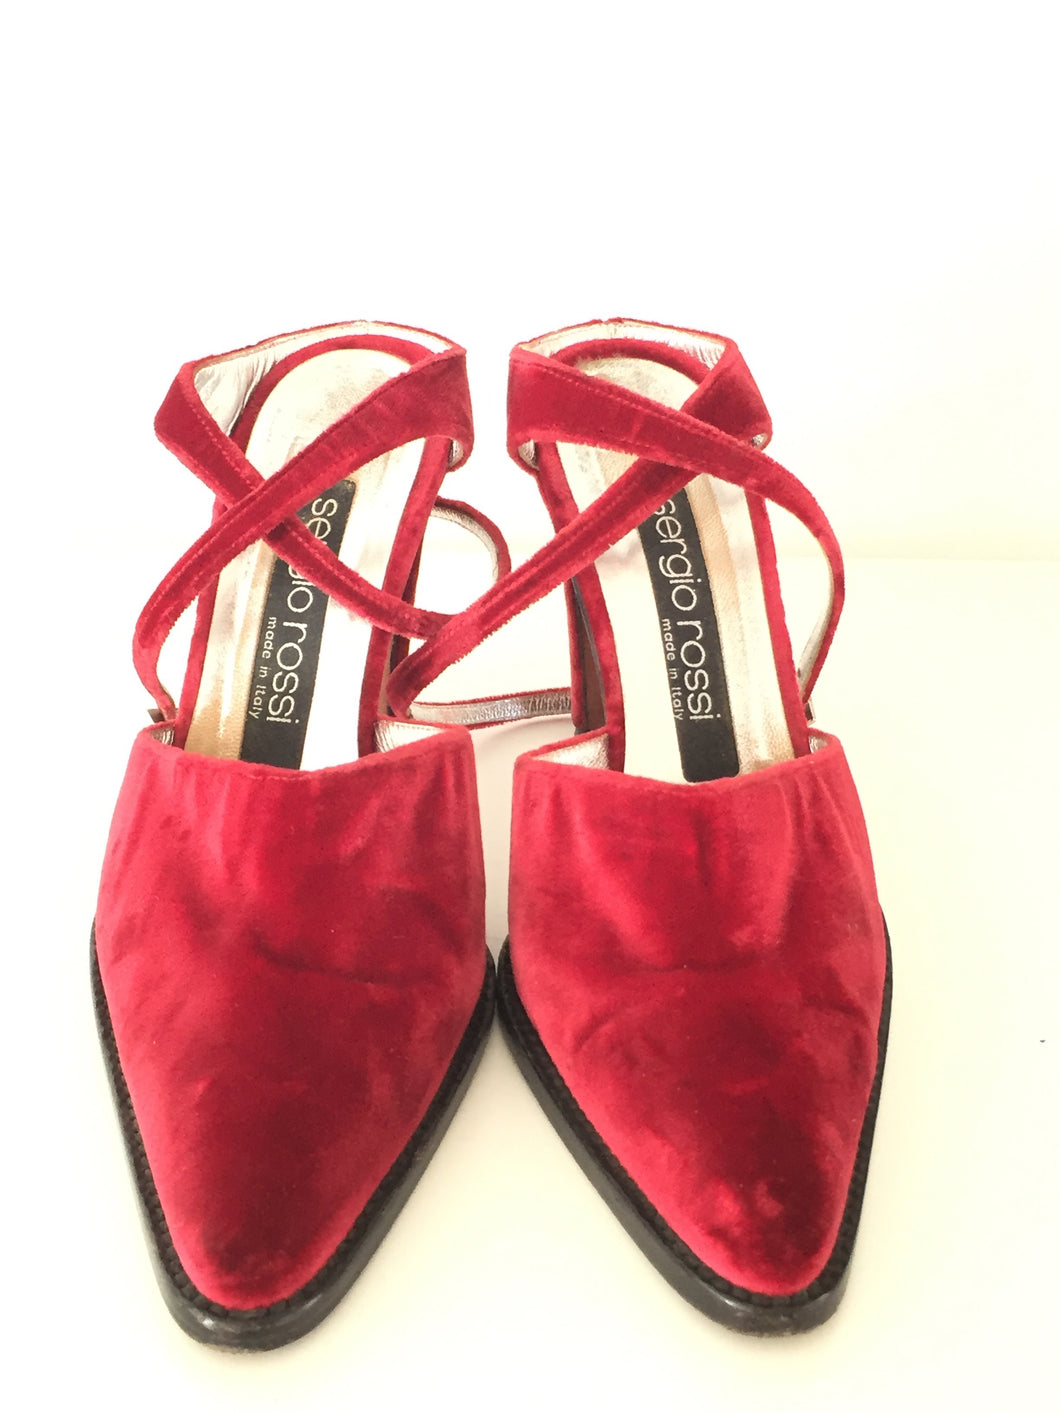 Sergio Rossi Velvet Shoes